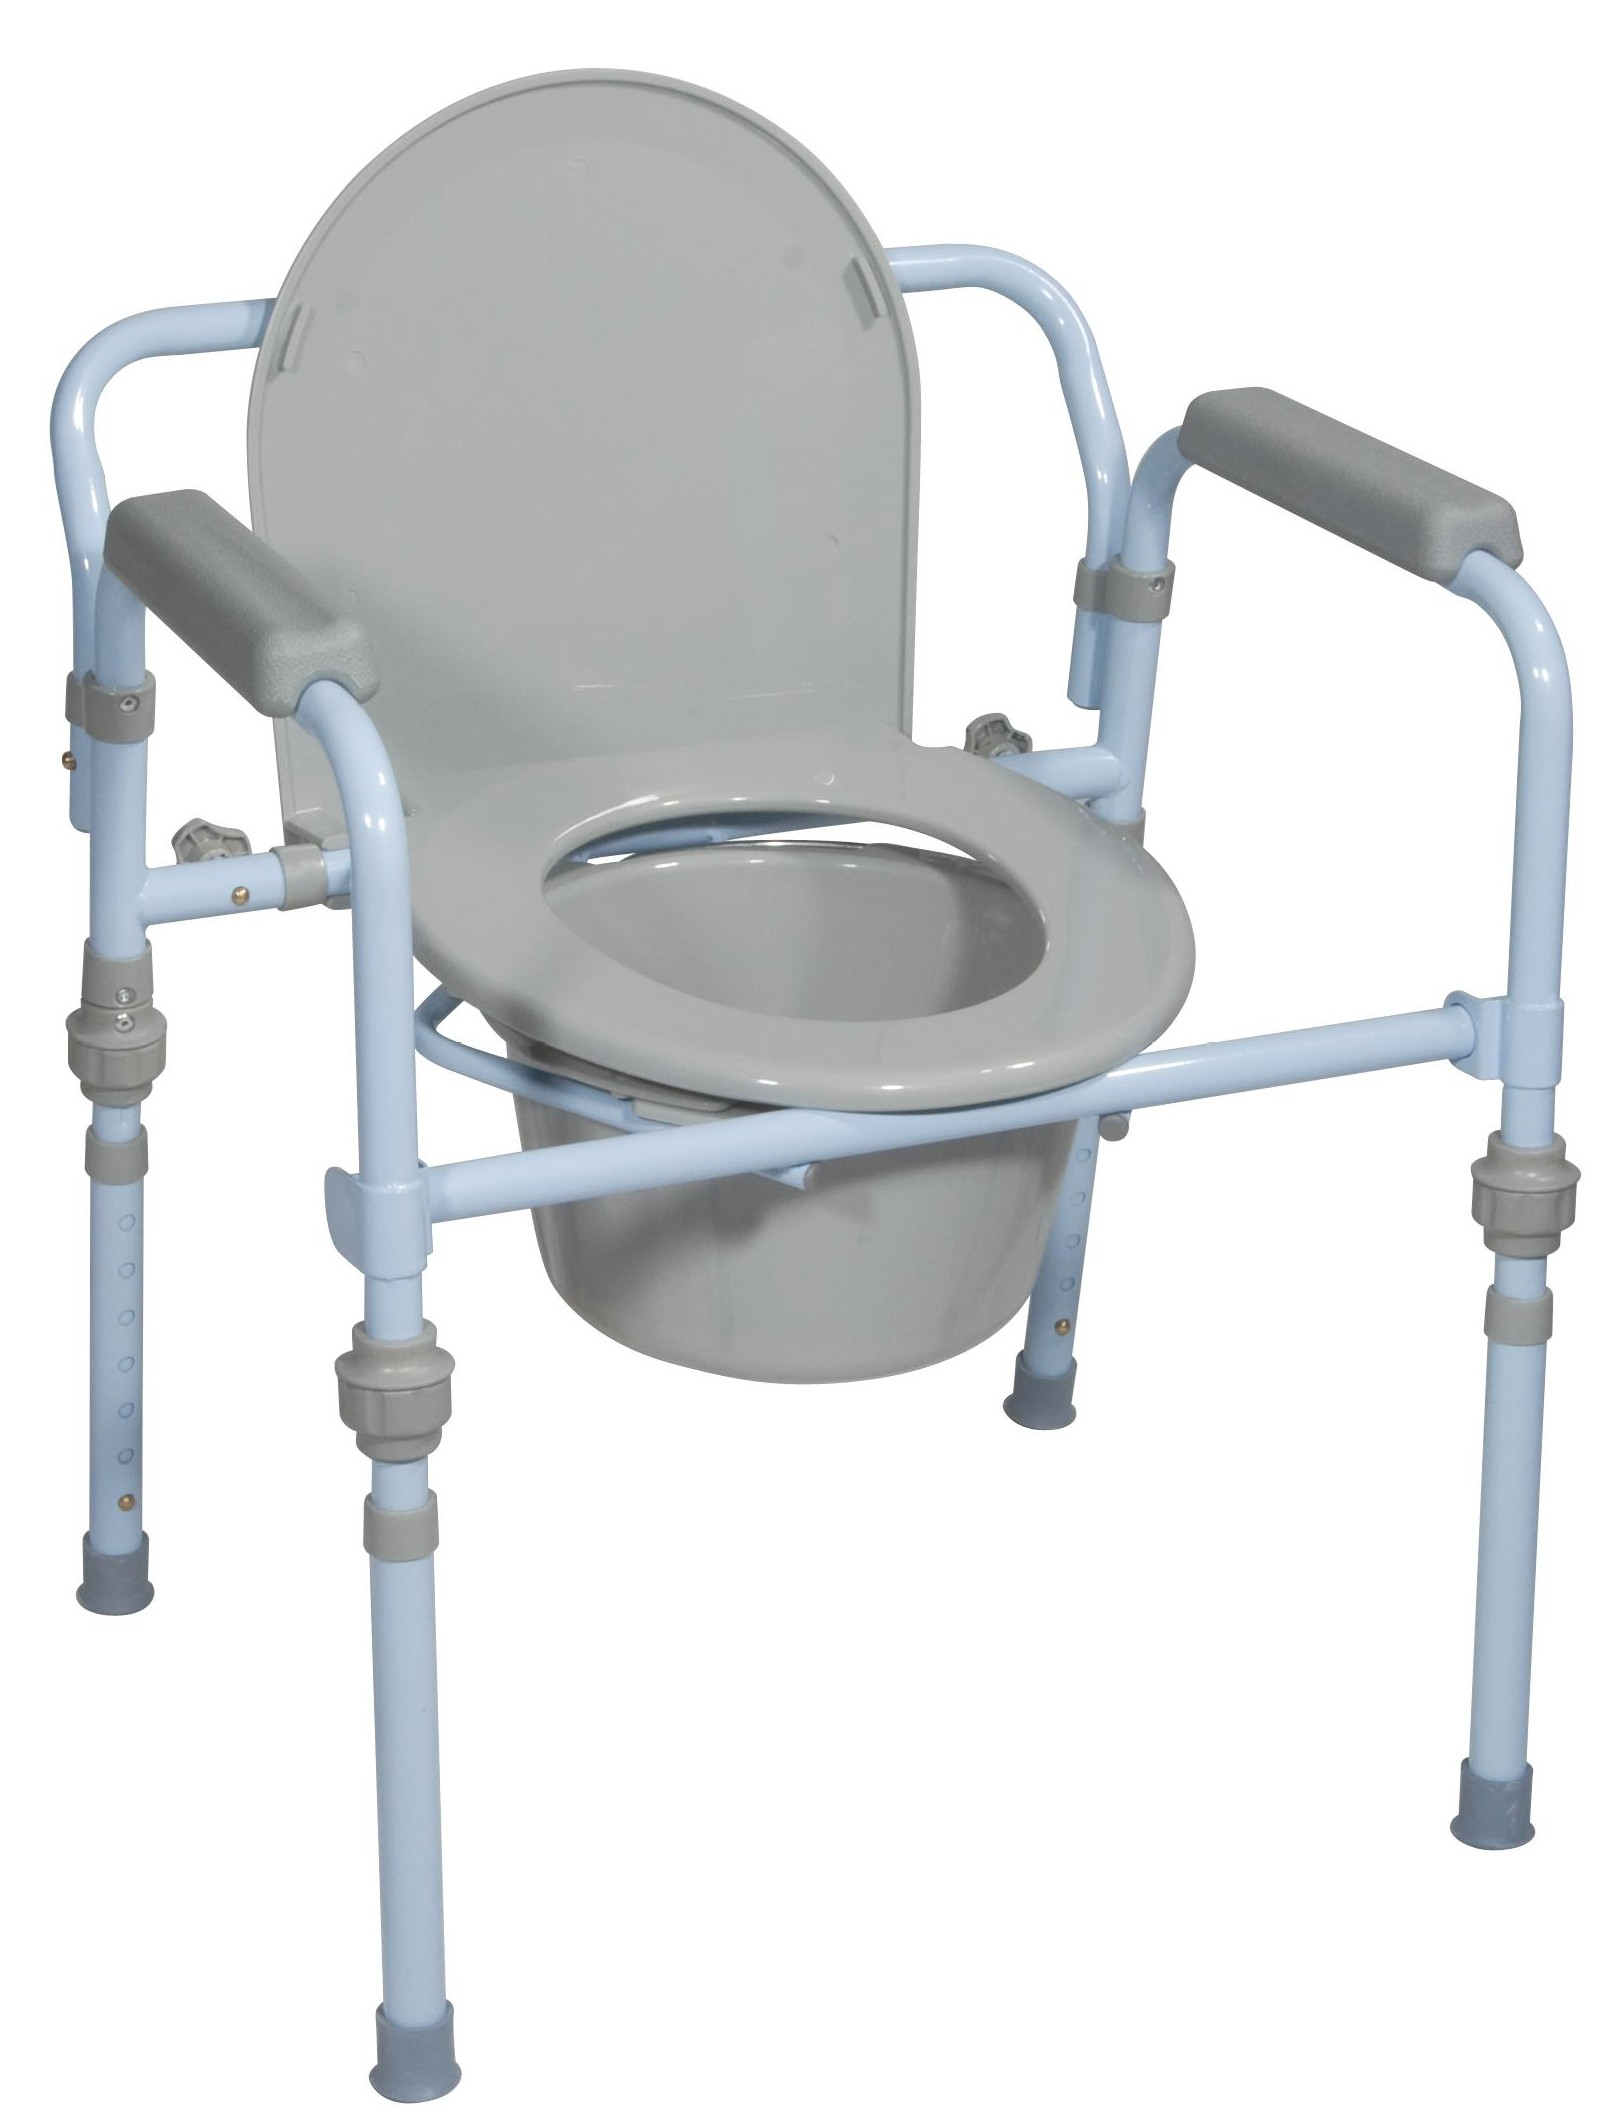 Commodes At Lowes | Lowes Bath Vanity | Lowes Pedestal Sink